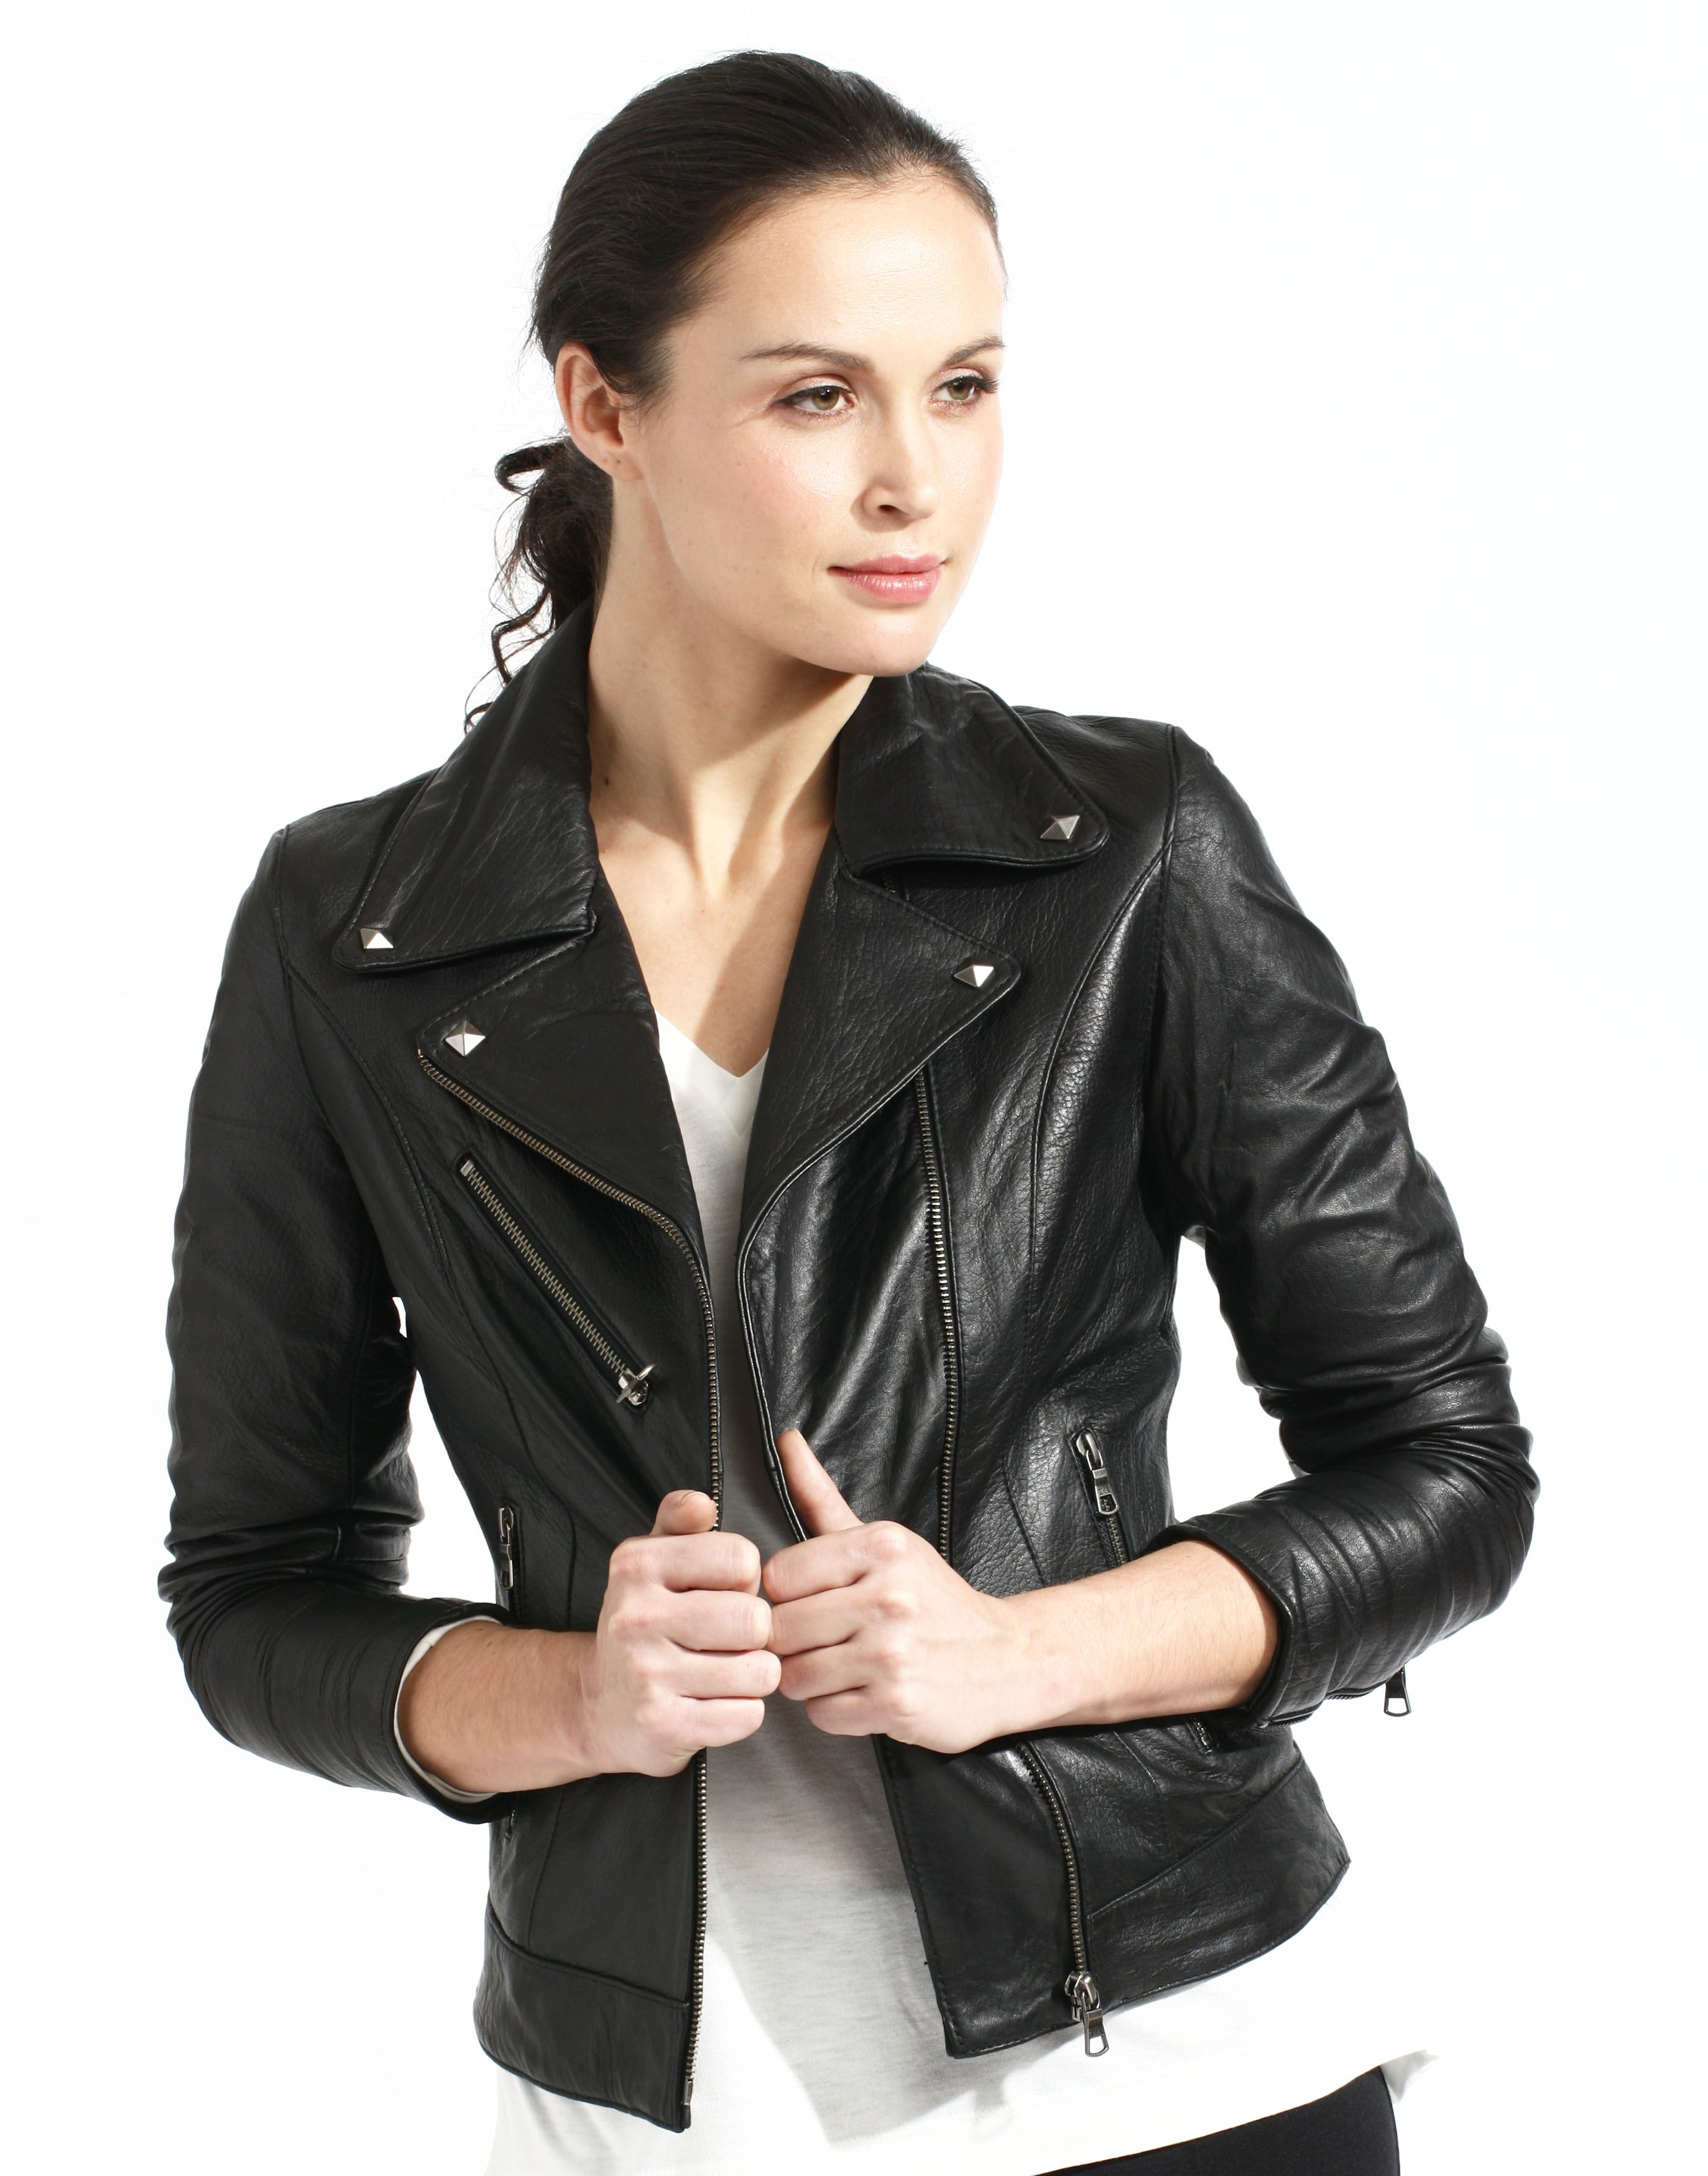 Women Trends Black Leather Jacket For Fall 2015 | Fashion 2015 ...